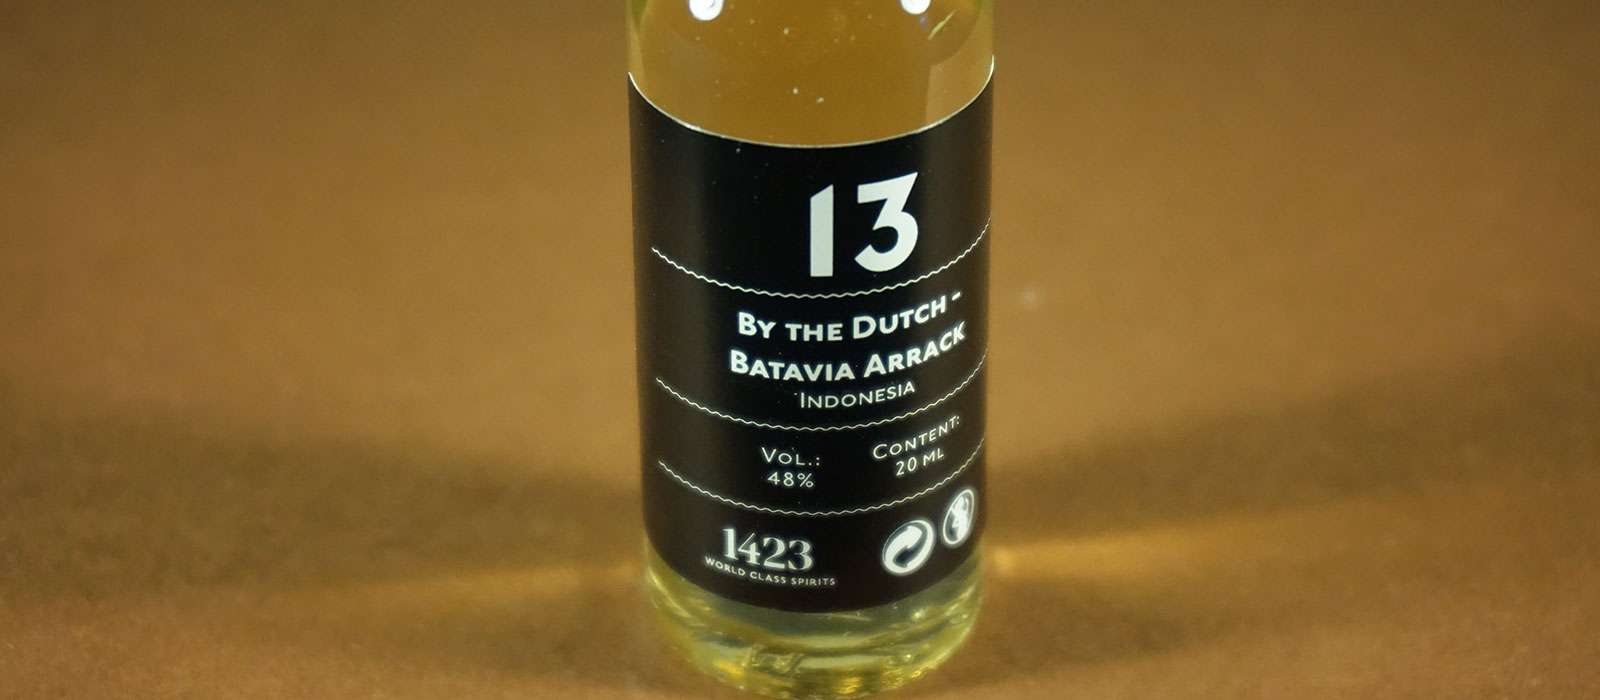 24 Days of Rum 2017: Dag 13 – By the Dutch Batavia Arrack